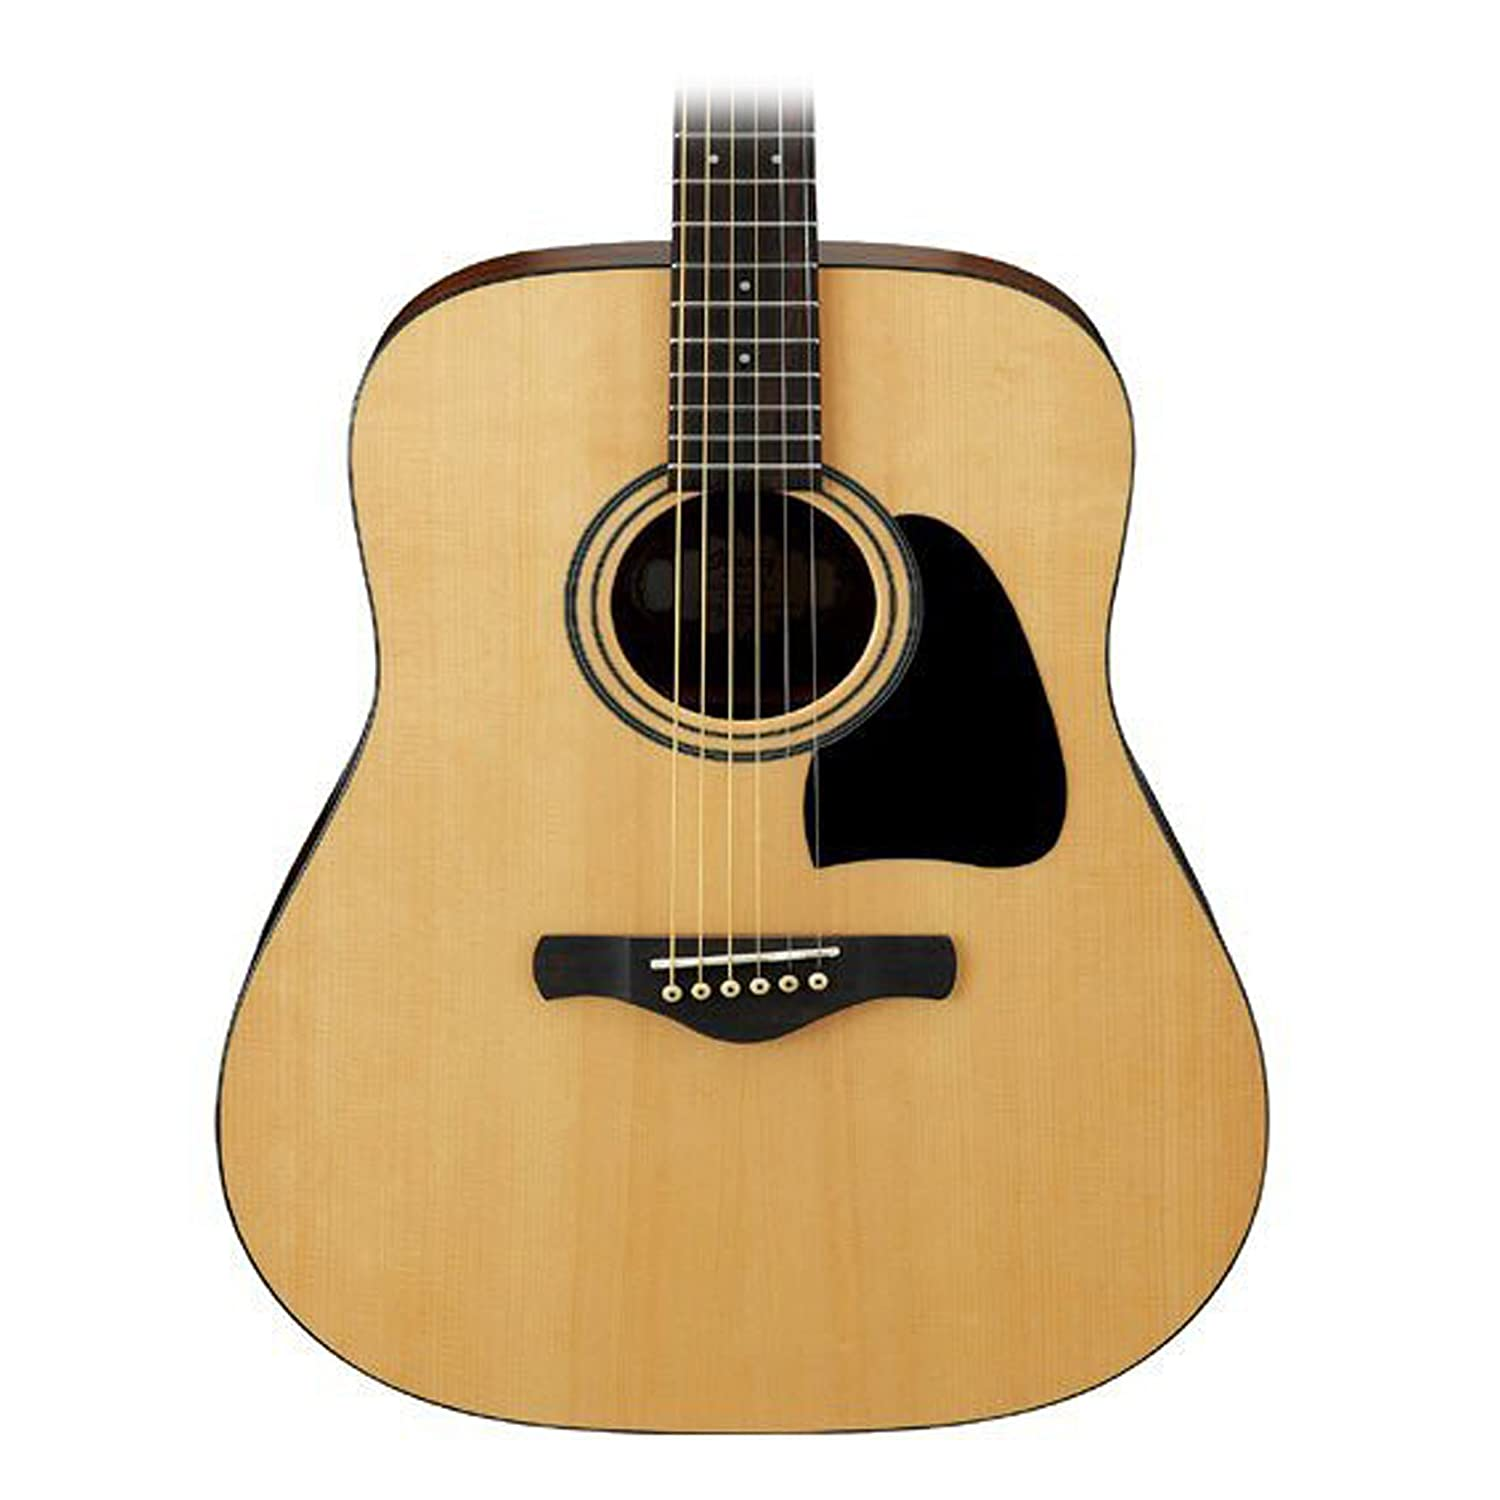 ibanez ijd100s jampack dreadnought solid top acoustic